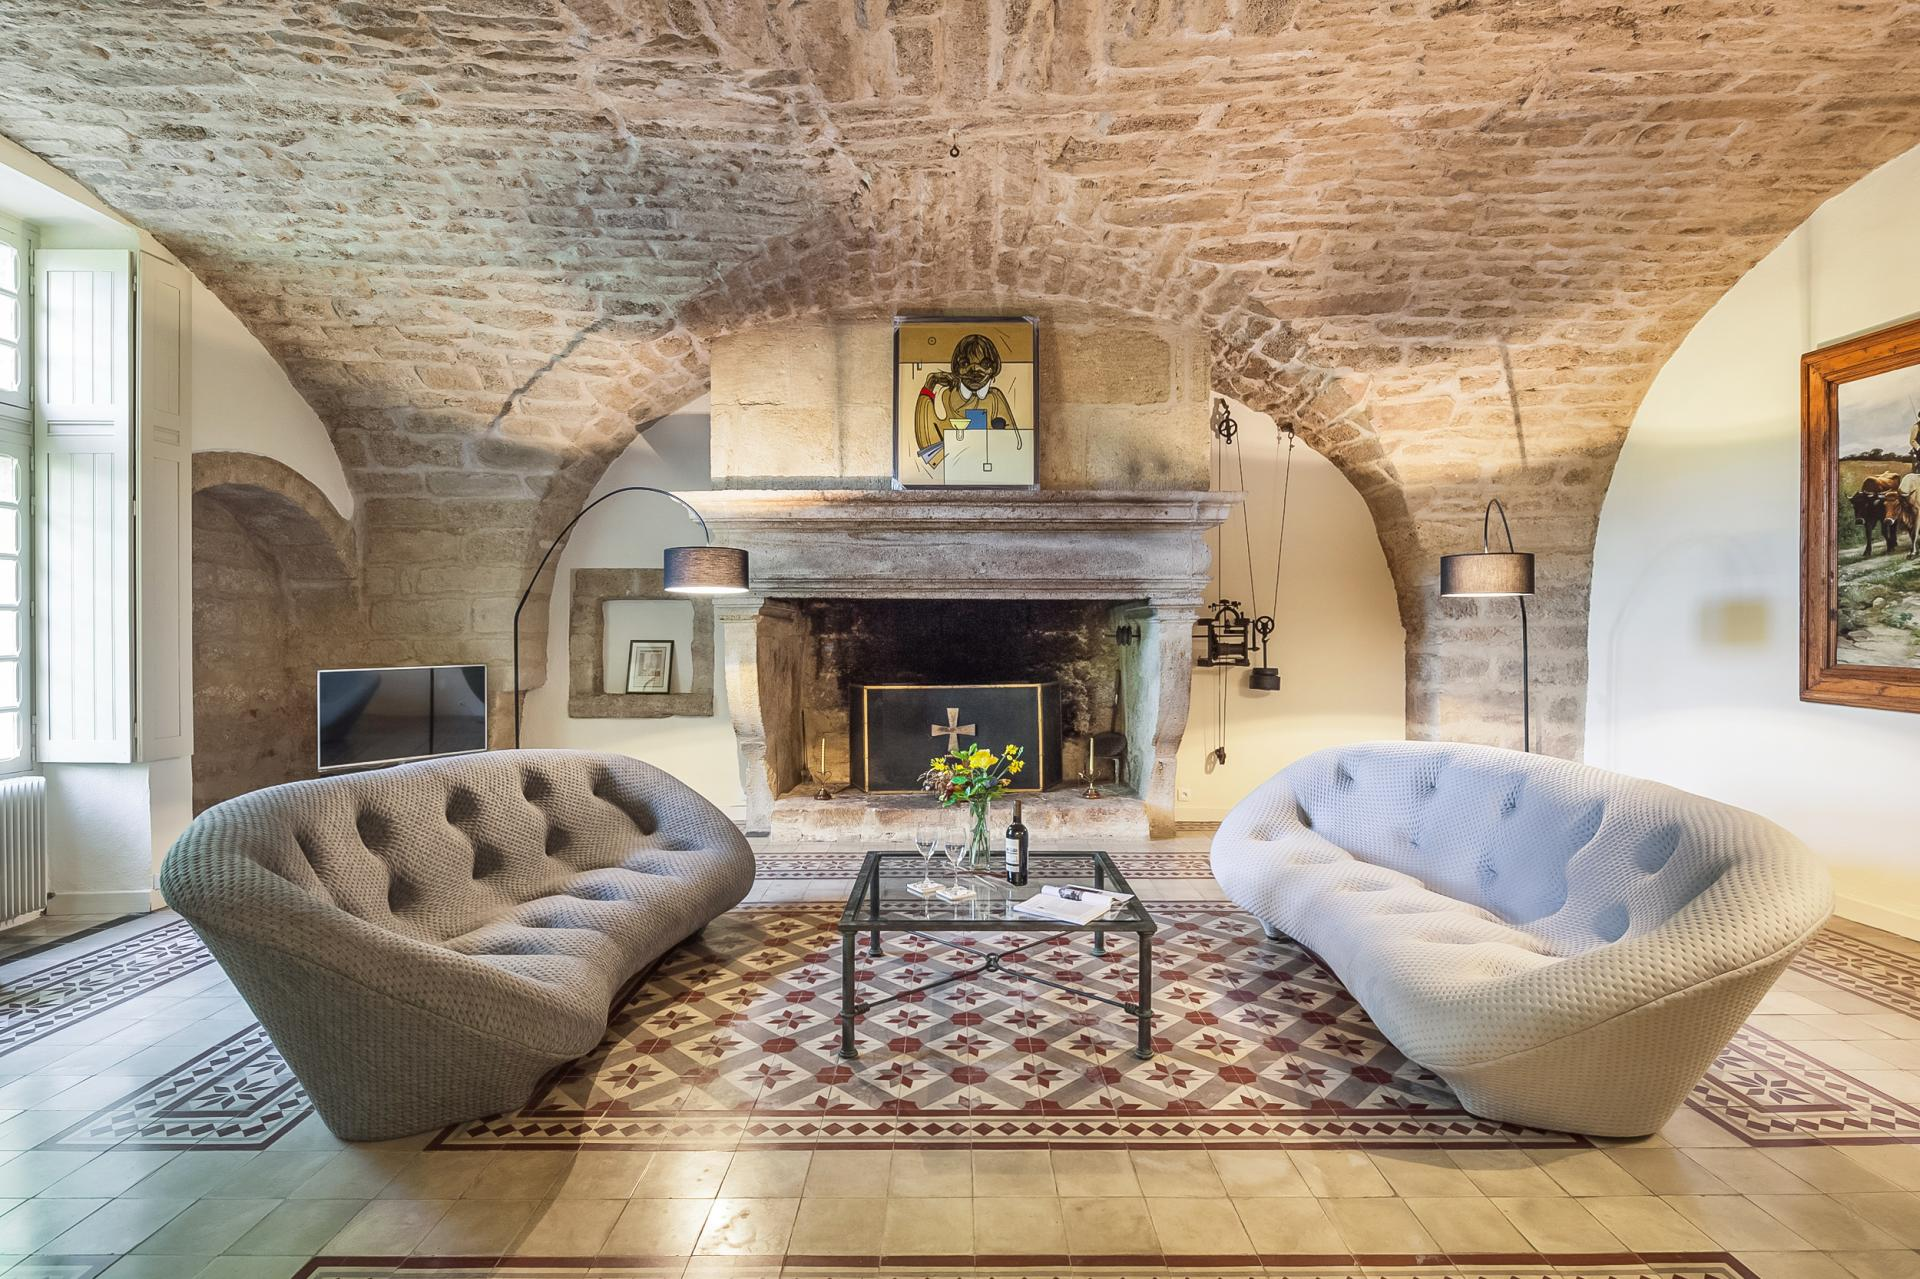 Lounge with Fireplace, Chateau Saint Martin, Montpellier, Languedoc.